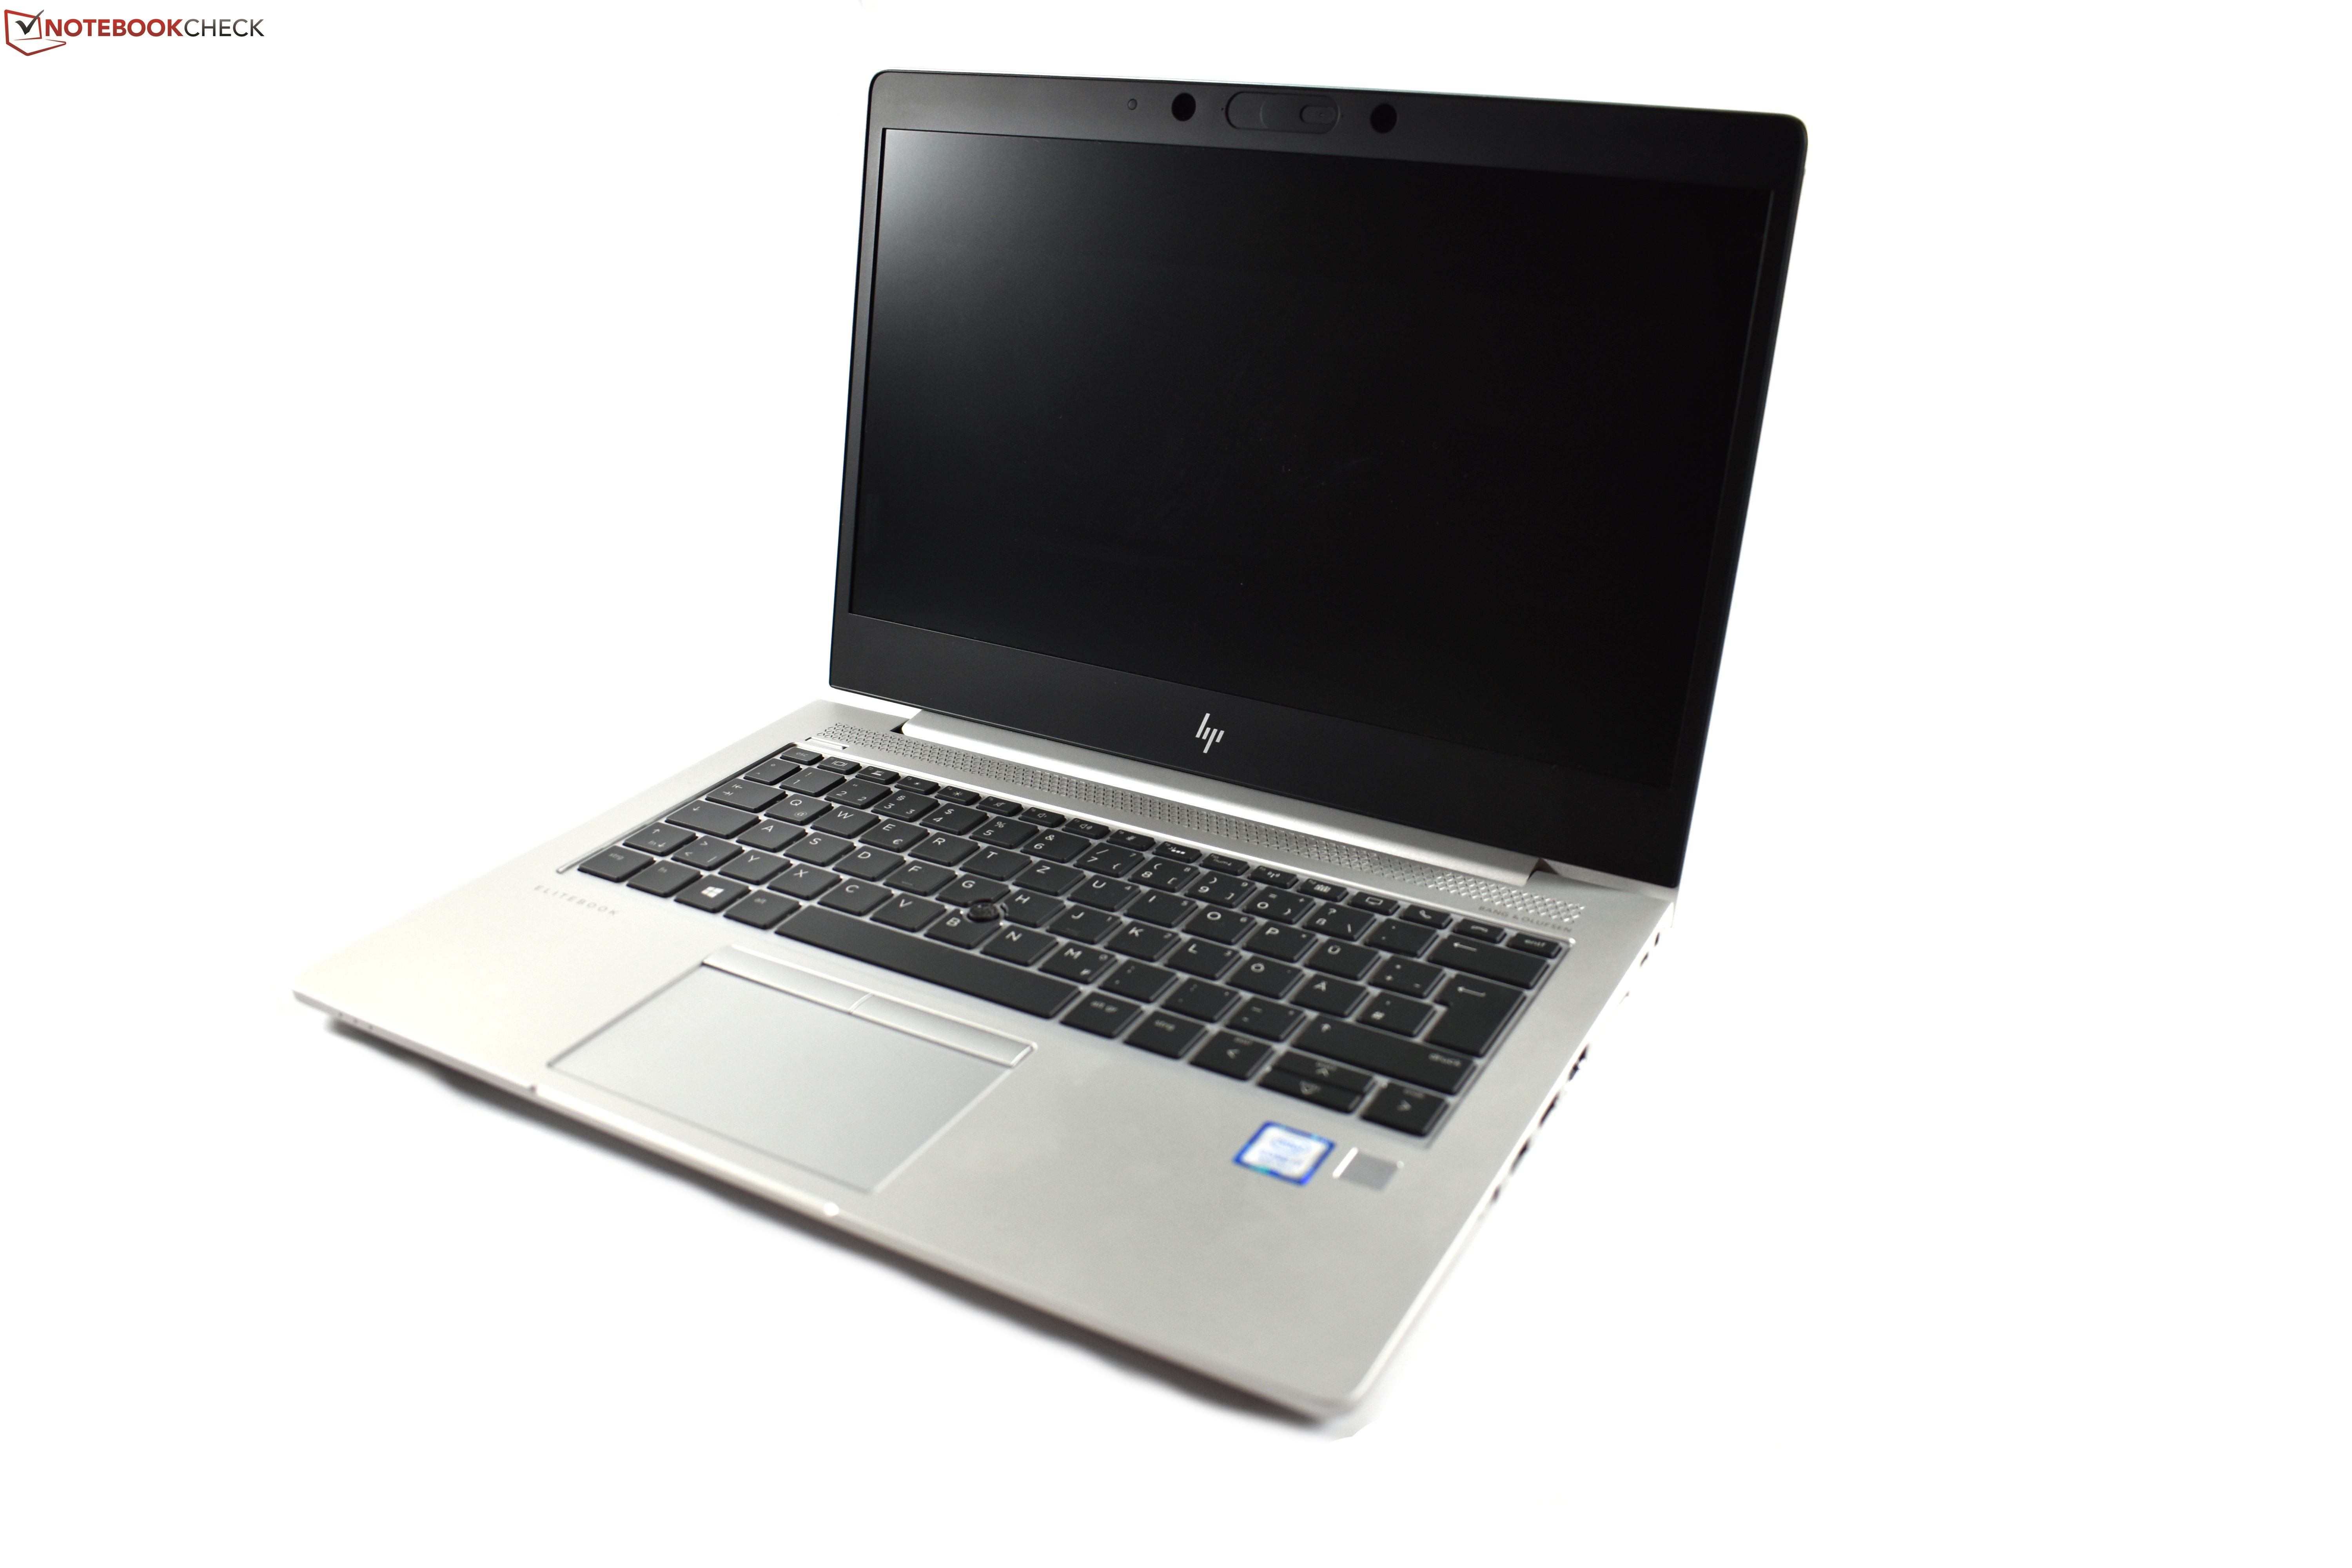 HP EliteBook 830 G5 (i7, FHD, SureView) Laptop Review